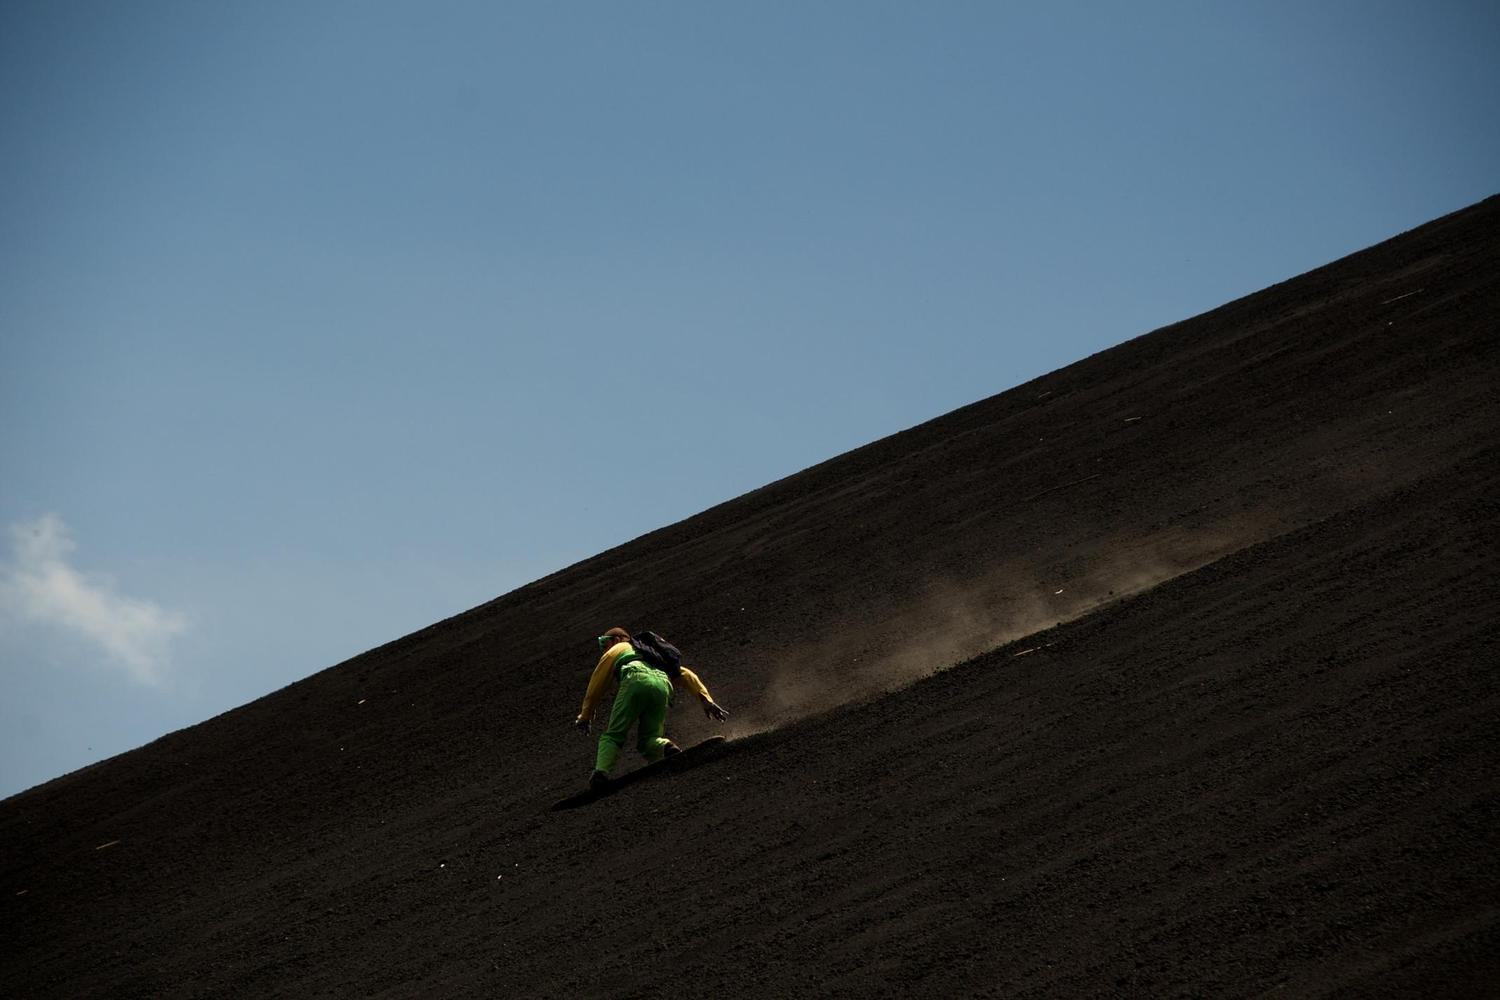 Sandboarding down the slopes of Cerro Negro volcano